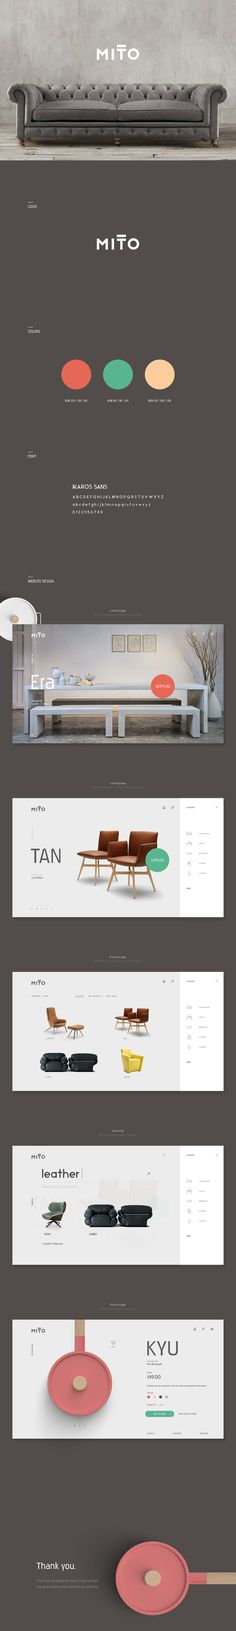 MITO on Behance